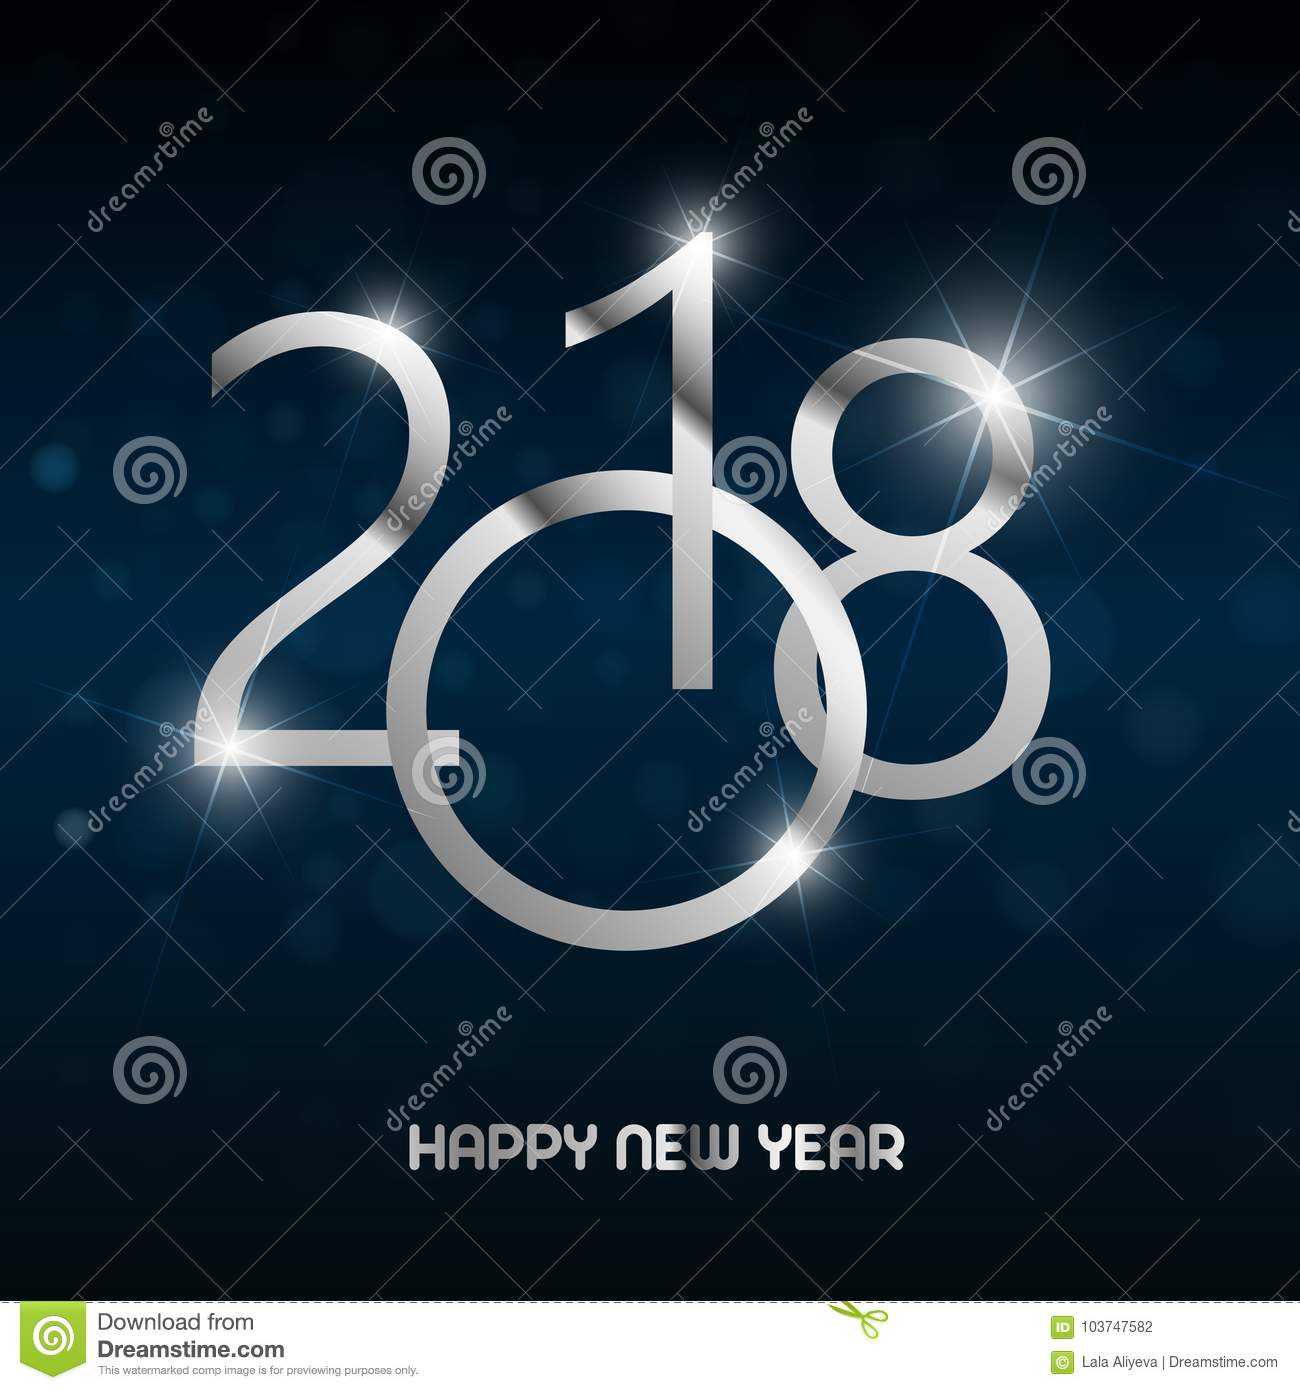 Happy New Year Greeting Card With Shining Silver Text On Blue